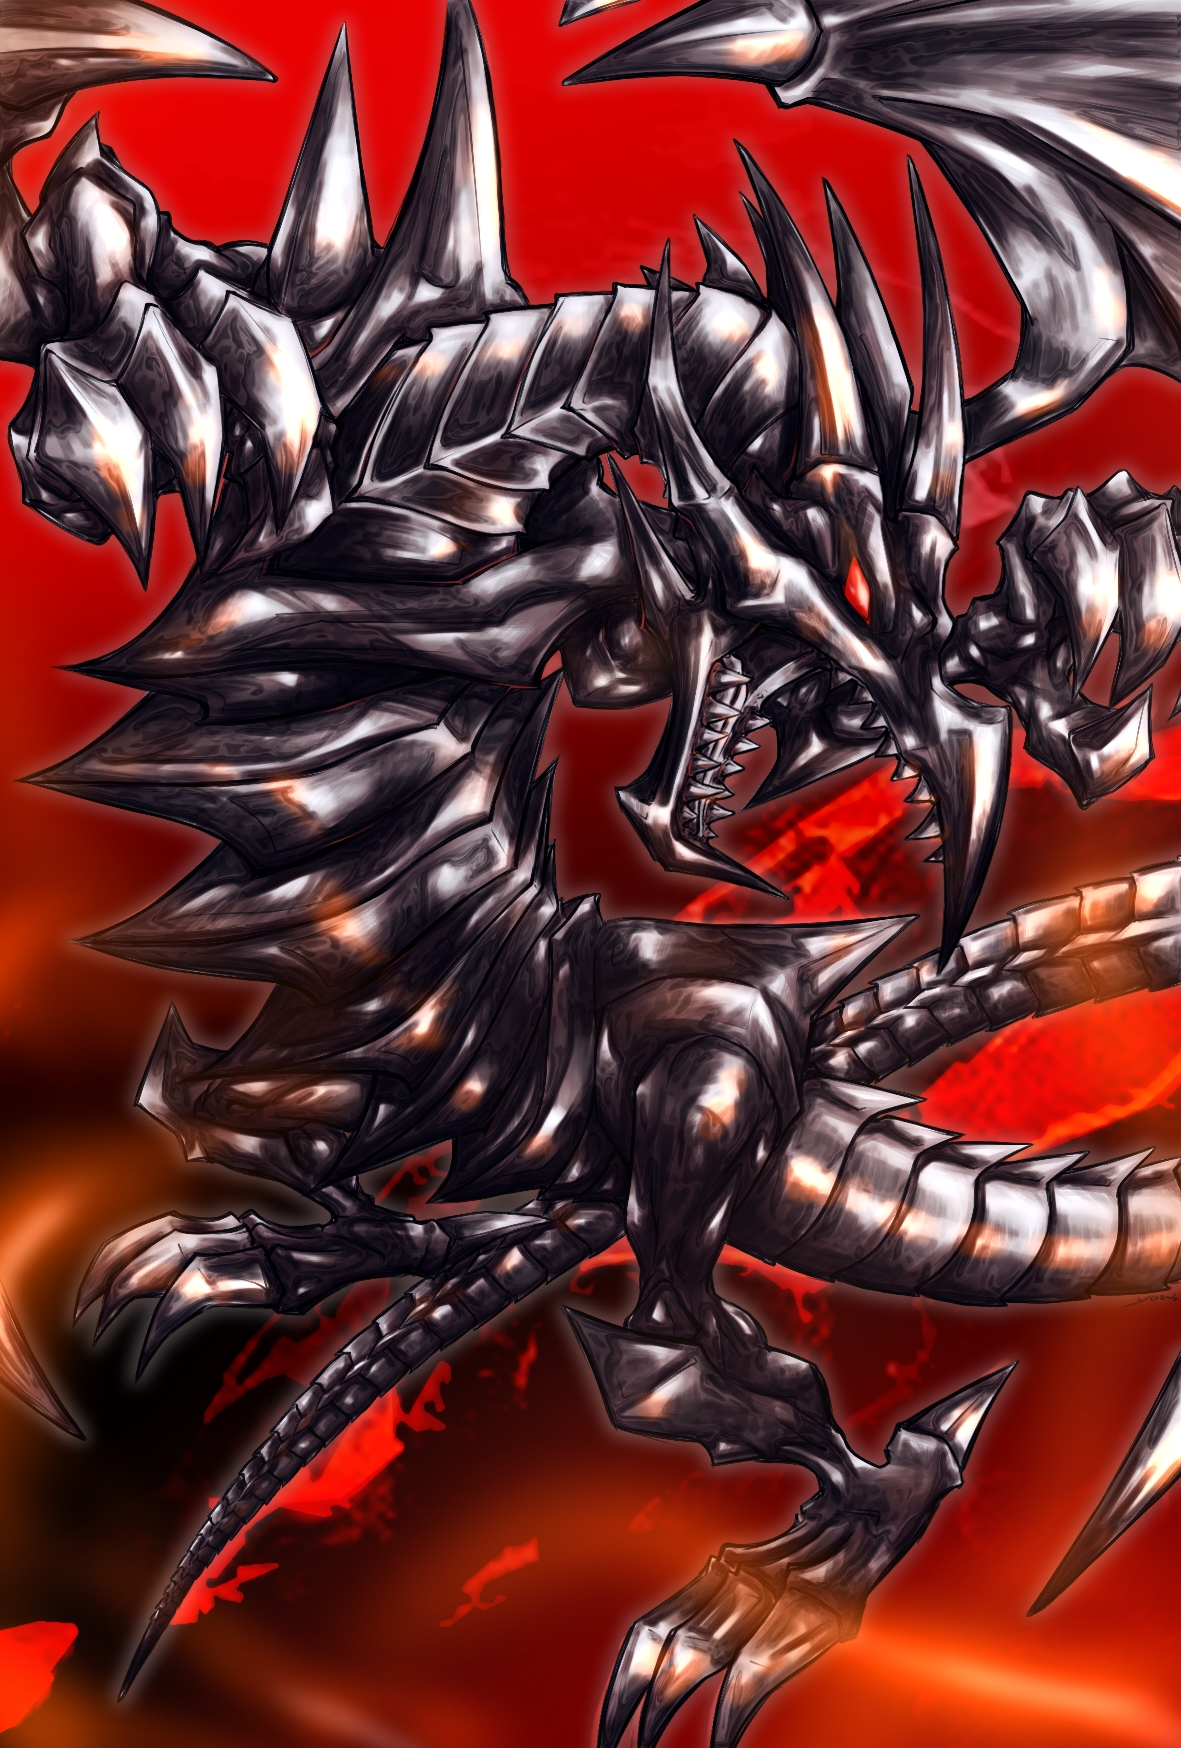 red eyes black ultimate dragon drawing images